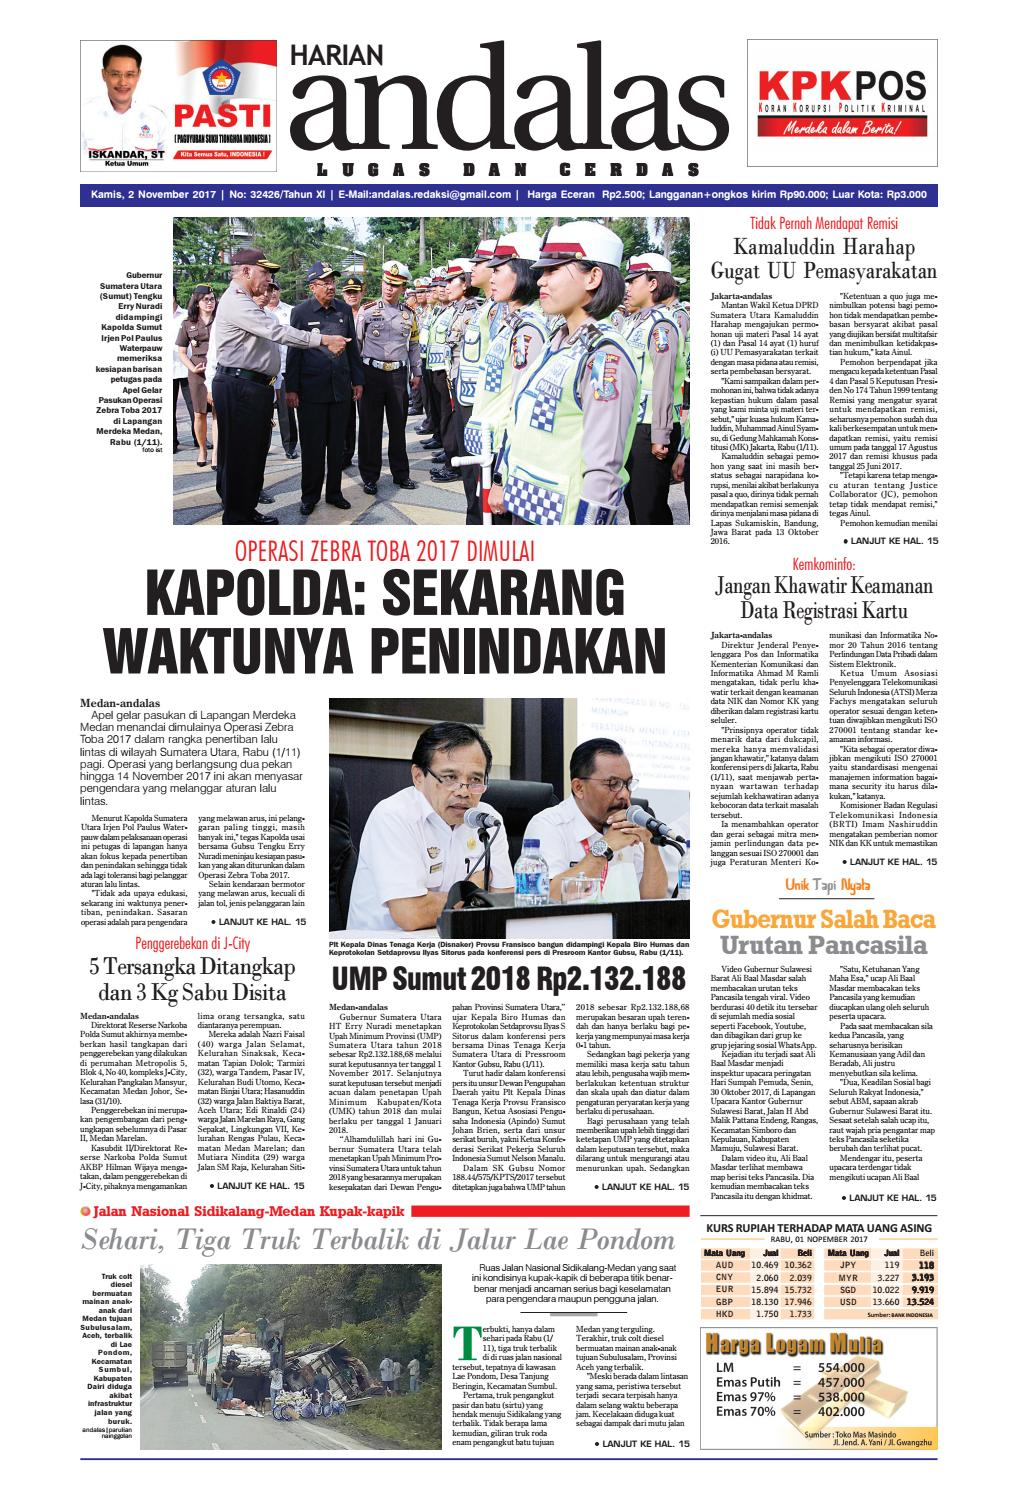 Epaper Andalas Edisi Kamis 2 November 2017 By Media Andalas Issuu